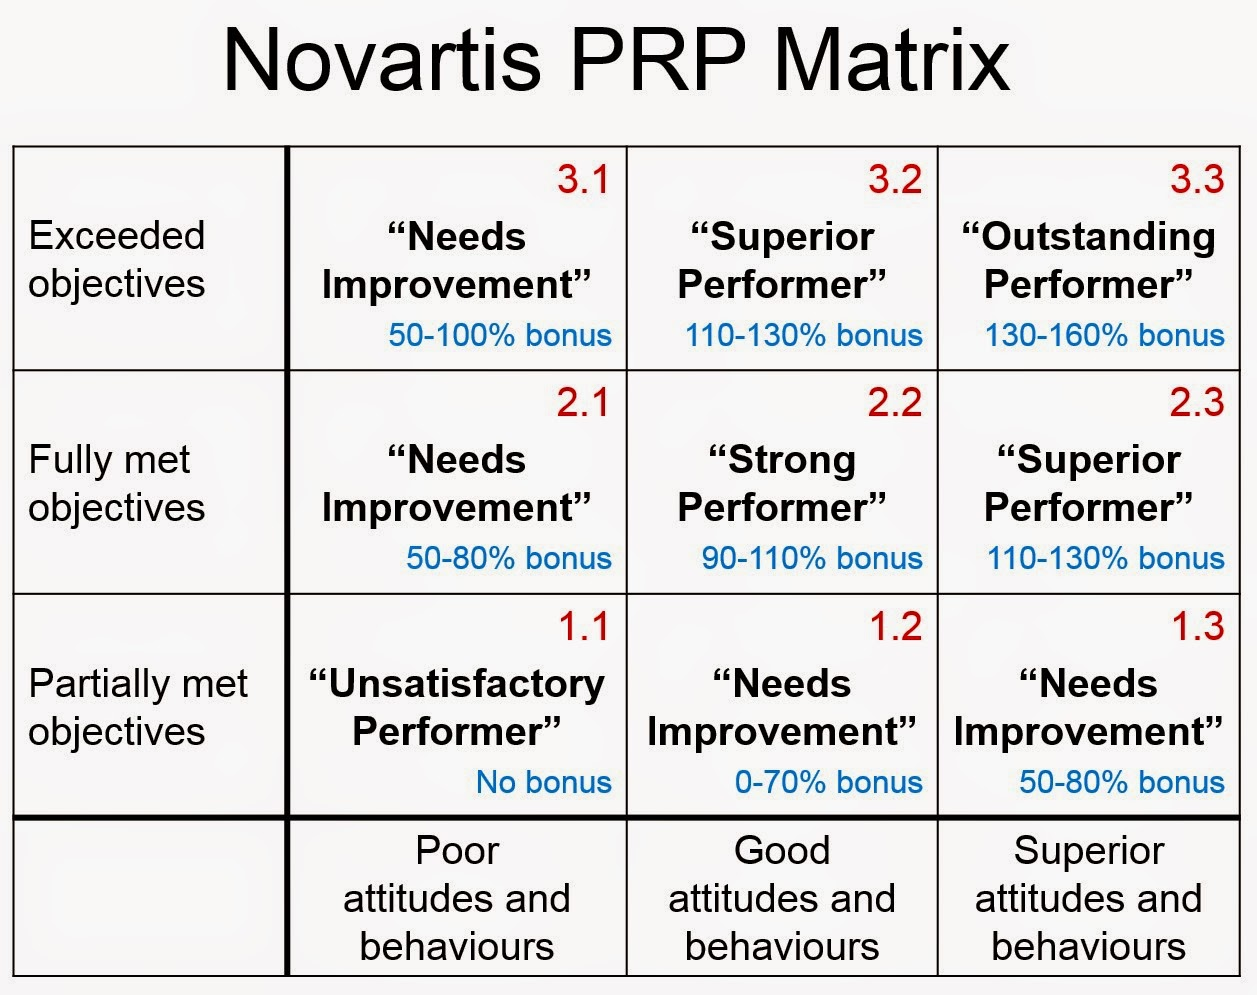 """global talent management at novartis case conclusion His goal was to make novartis a """"machine of top talent for 2005"""" the new global hris was a key element in this transformation walker was clear that this was a major organizational change effort, not simply an it implementation the case describes the changes walker had already made and presents a set of challenges that must be addressed to."""